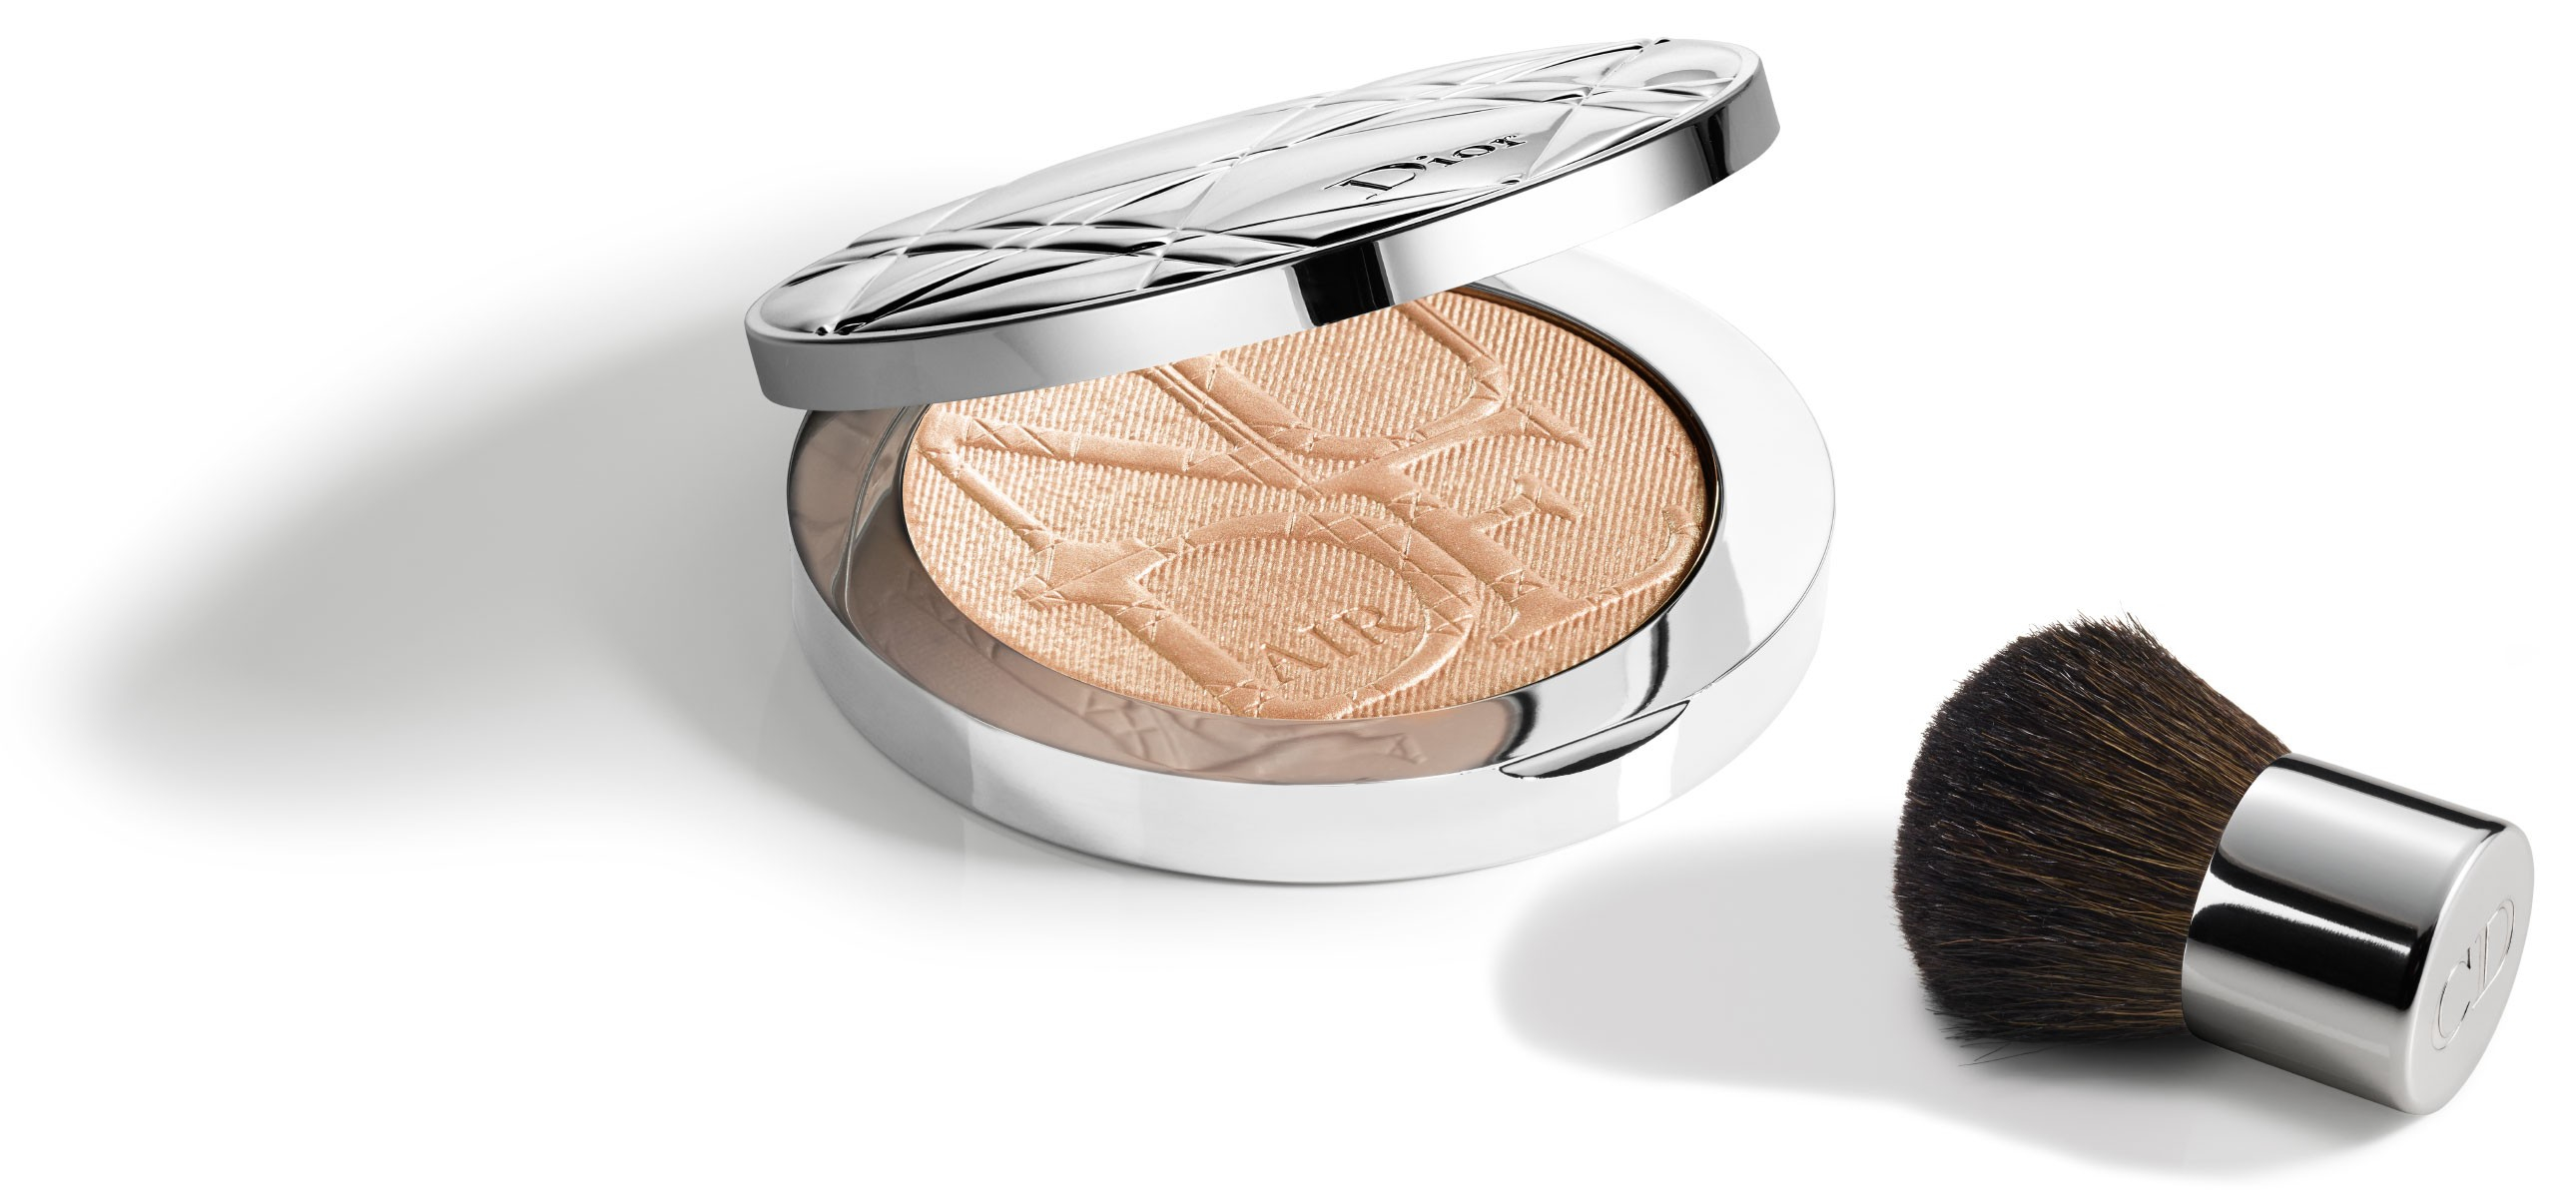 Dior kolekcja Autumn/Fall 2016 Skyline DiorSkin Nude Air Luminizer Powder